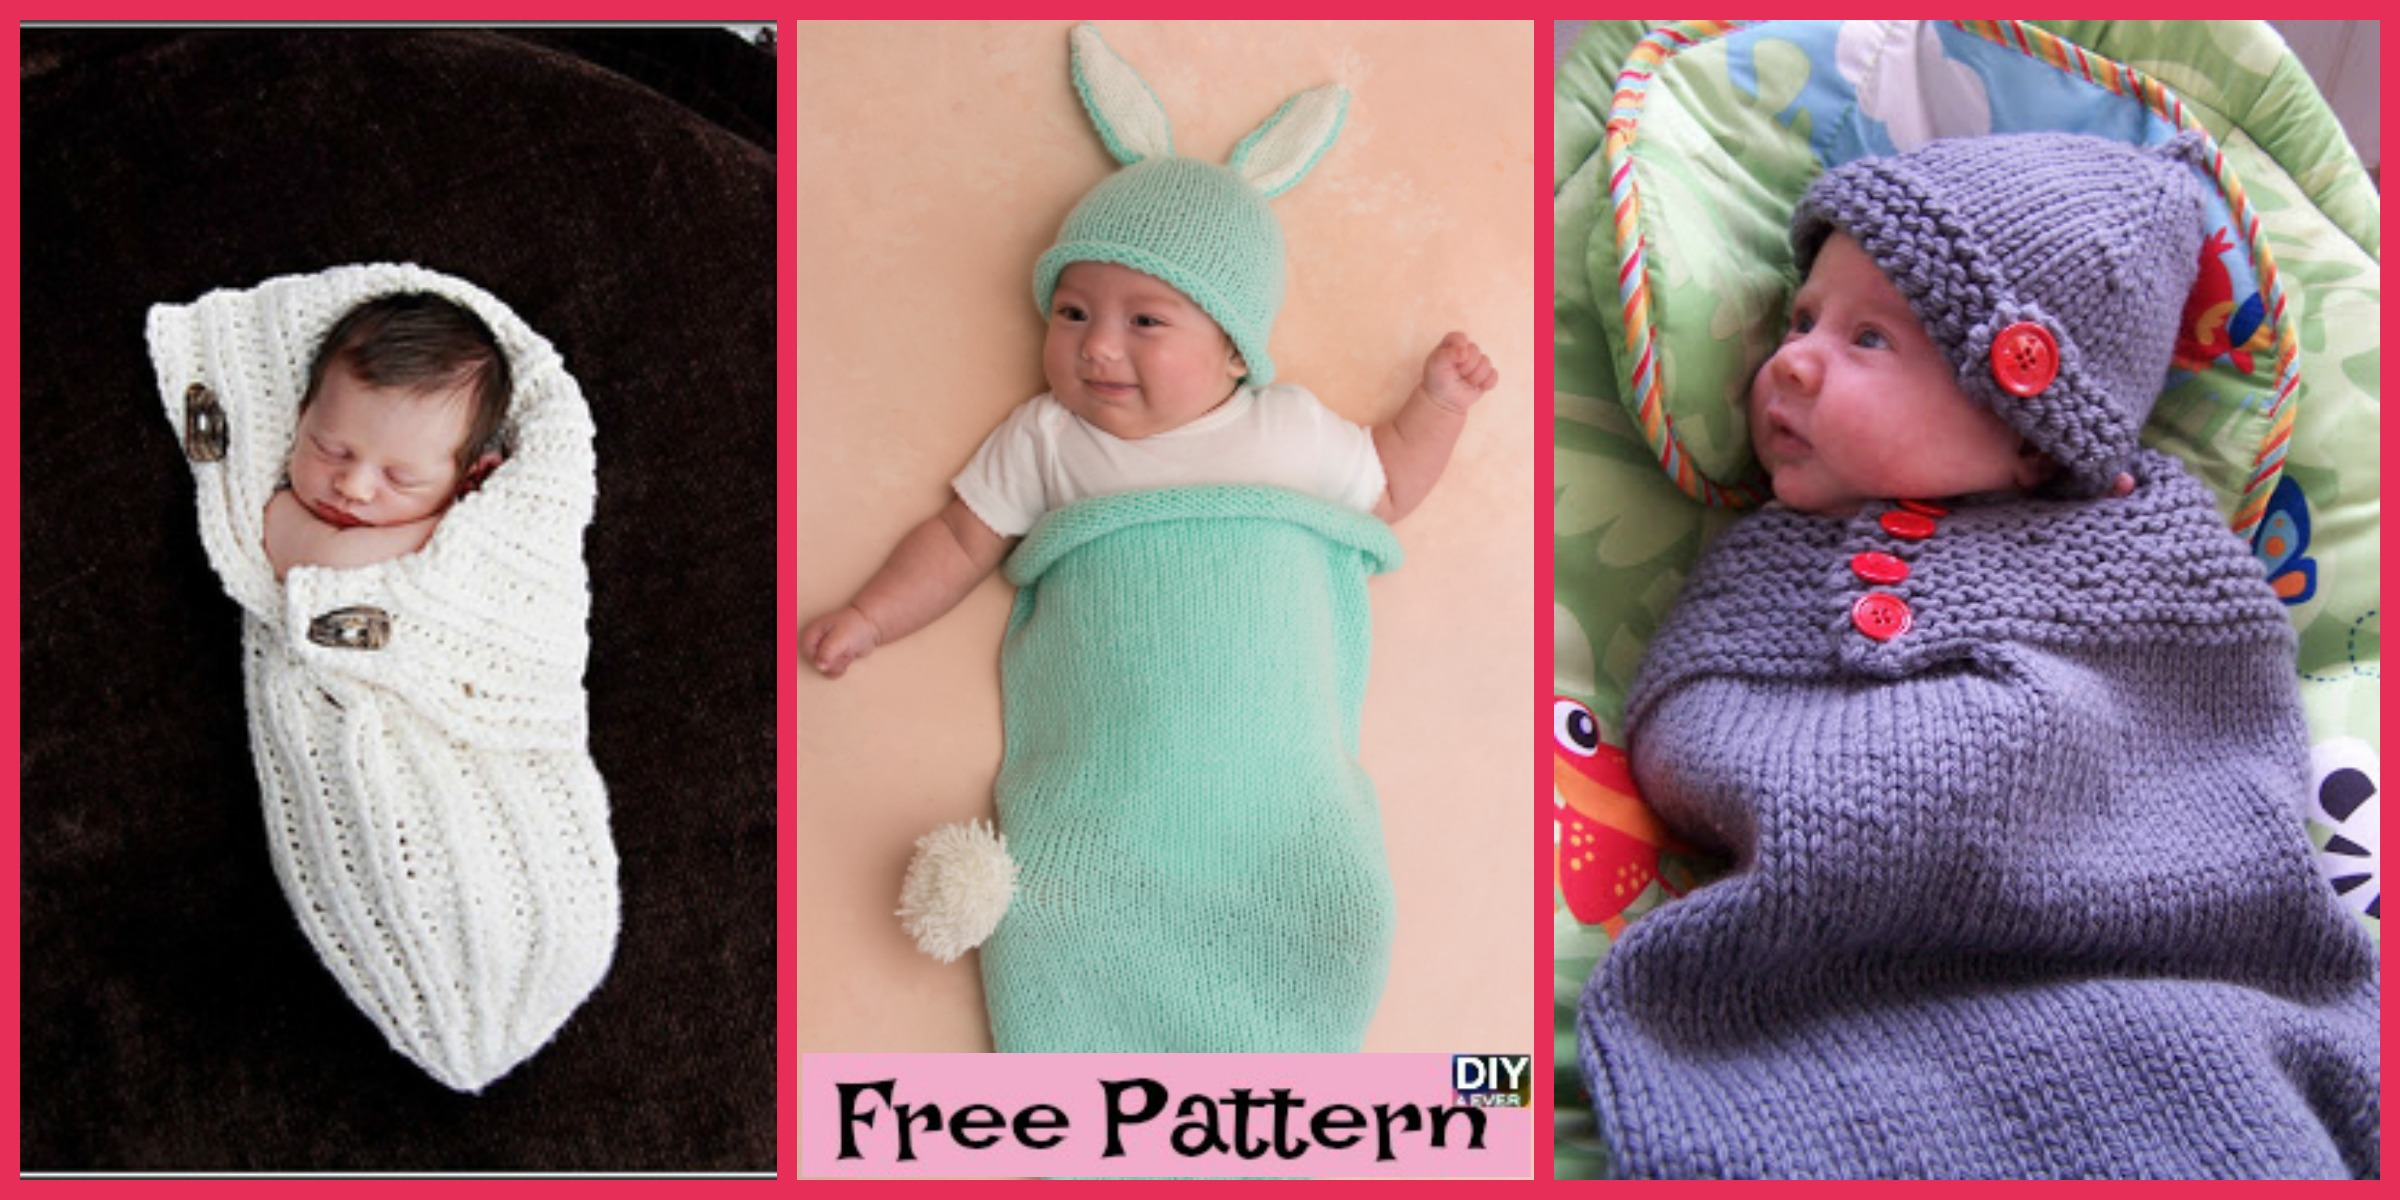 Adorable Knitted Baby Cocoons - Free Patterns - DIY 4 EVER